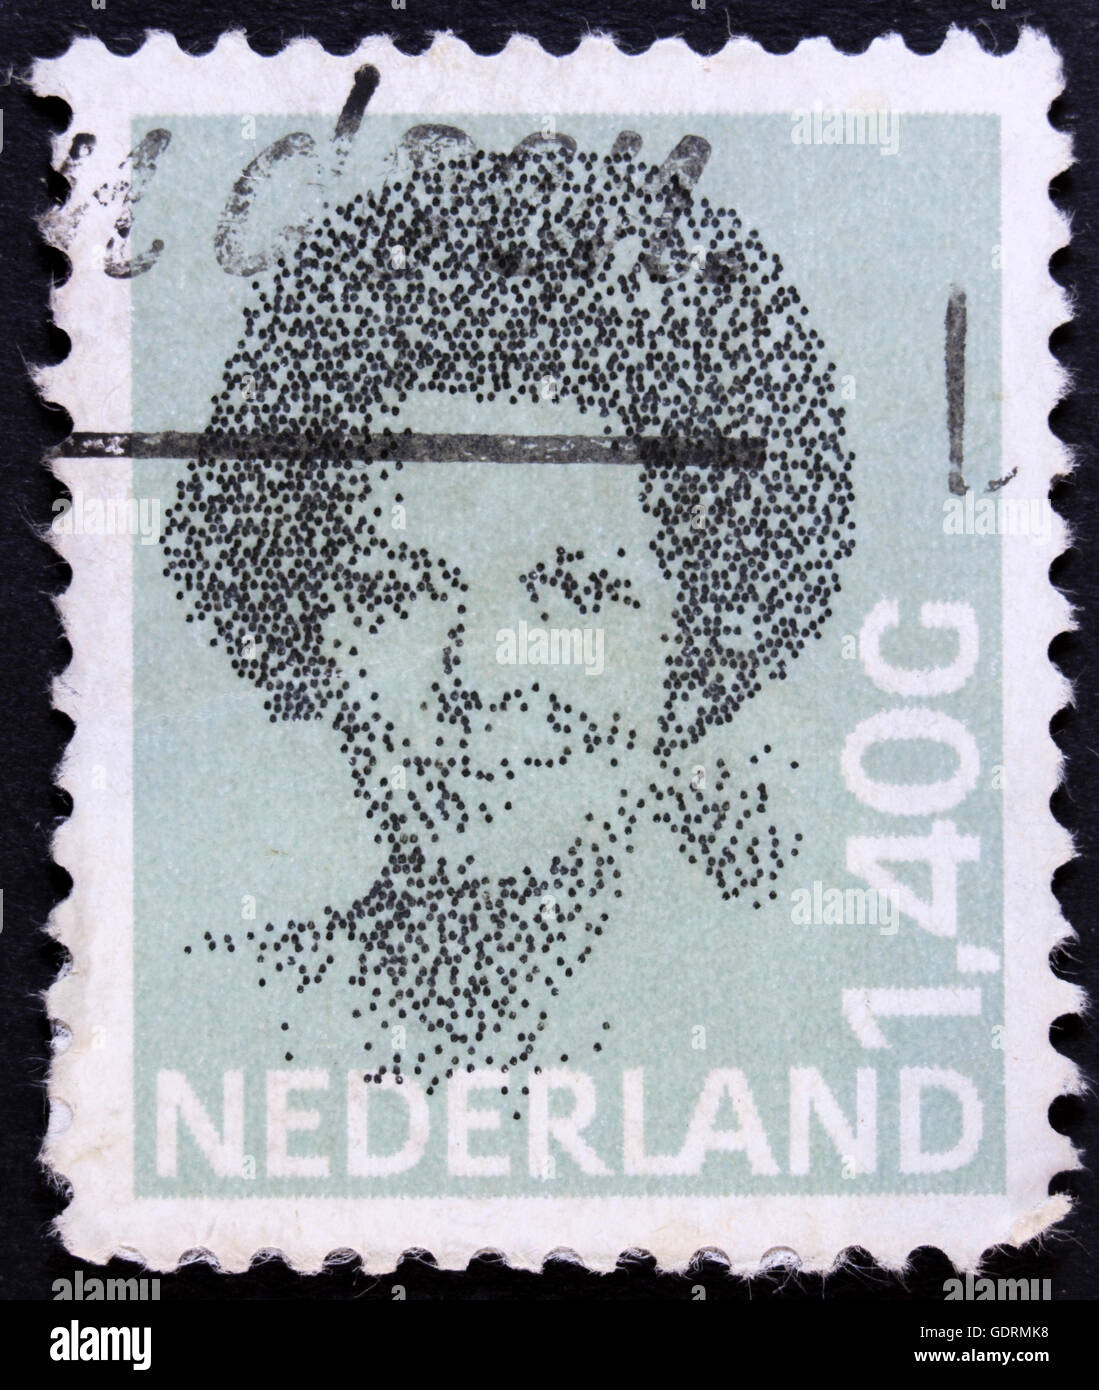 Netherlands- CIRCA 1983: Beatrix has been the Queen regnant of the Kingdom of the Netherlands since 30 April 1980, - Stock Image